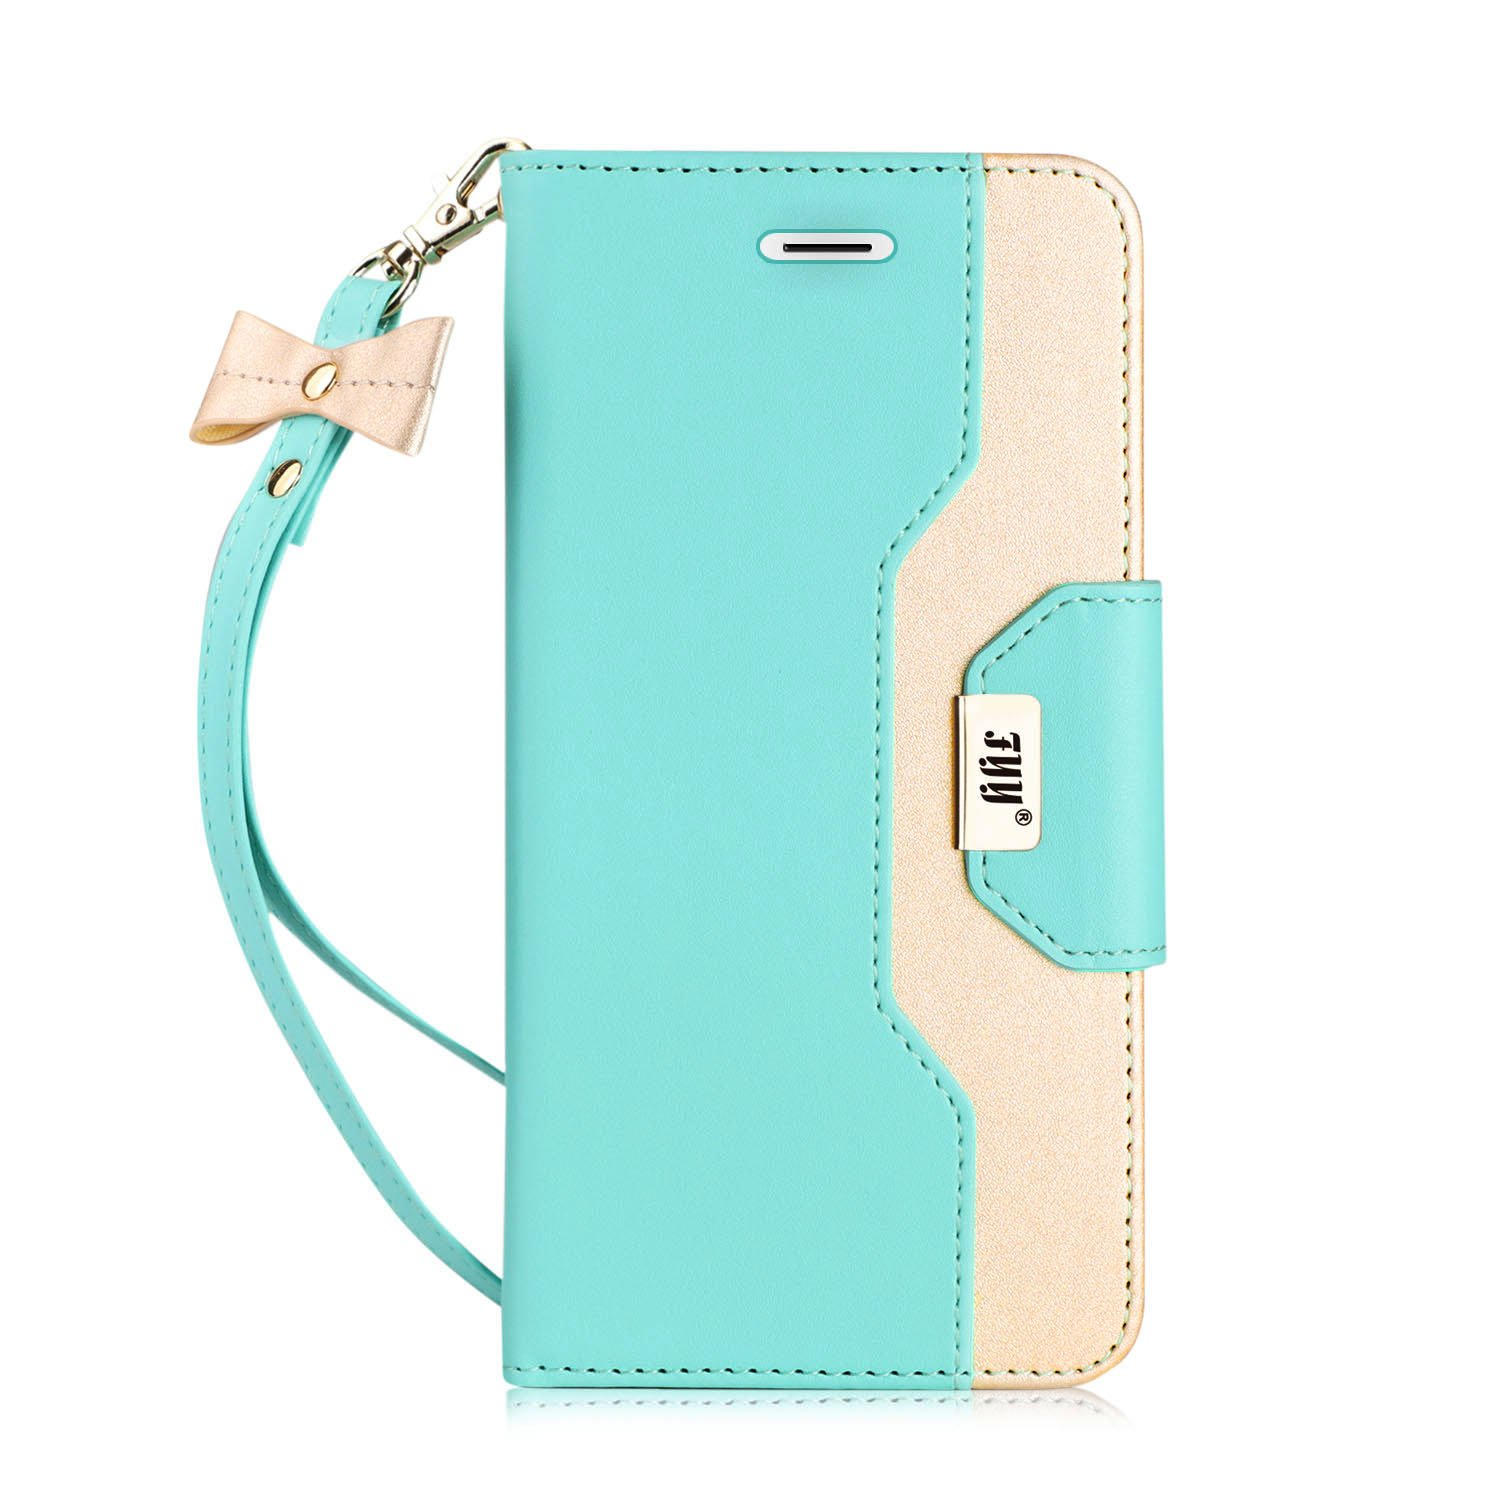 FYY Leather Case with Mirror for iPhone 6S Plus/iPhone 6 Plus, Leather Wallet Flip Folio Case with Mirror and Wrist Strap for iPhone 6S Plus/6 Plus Mint Green